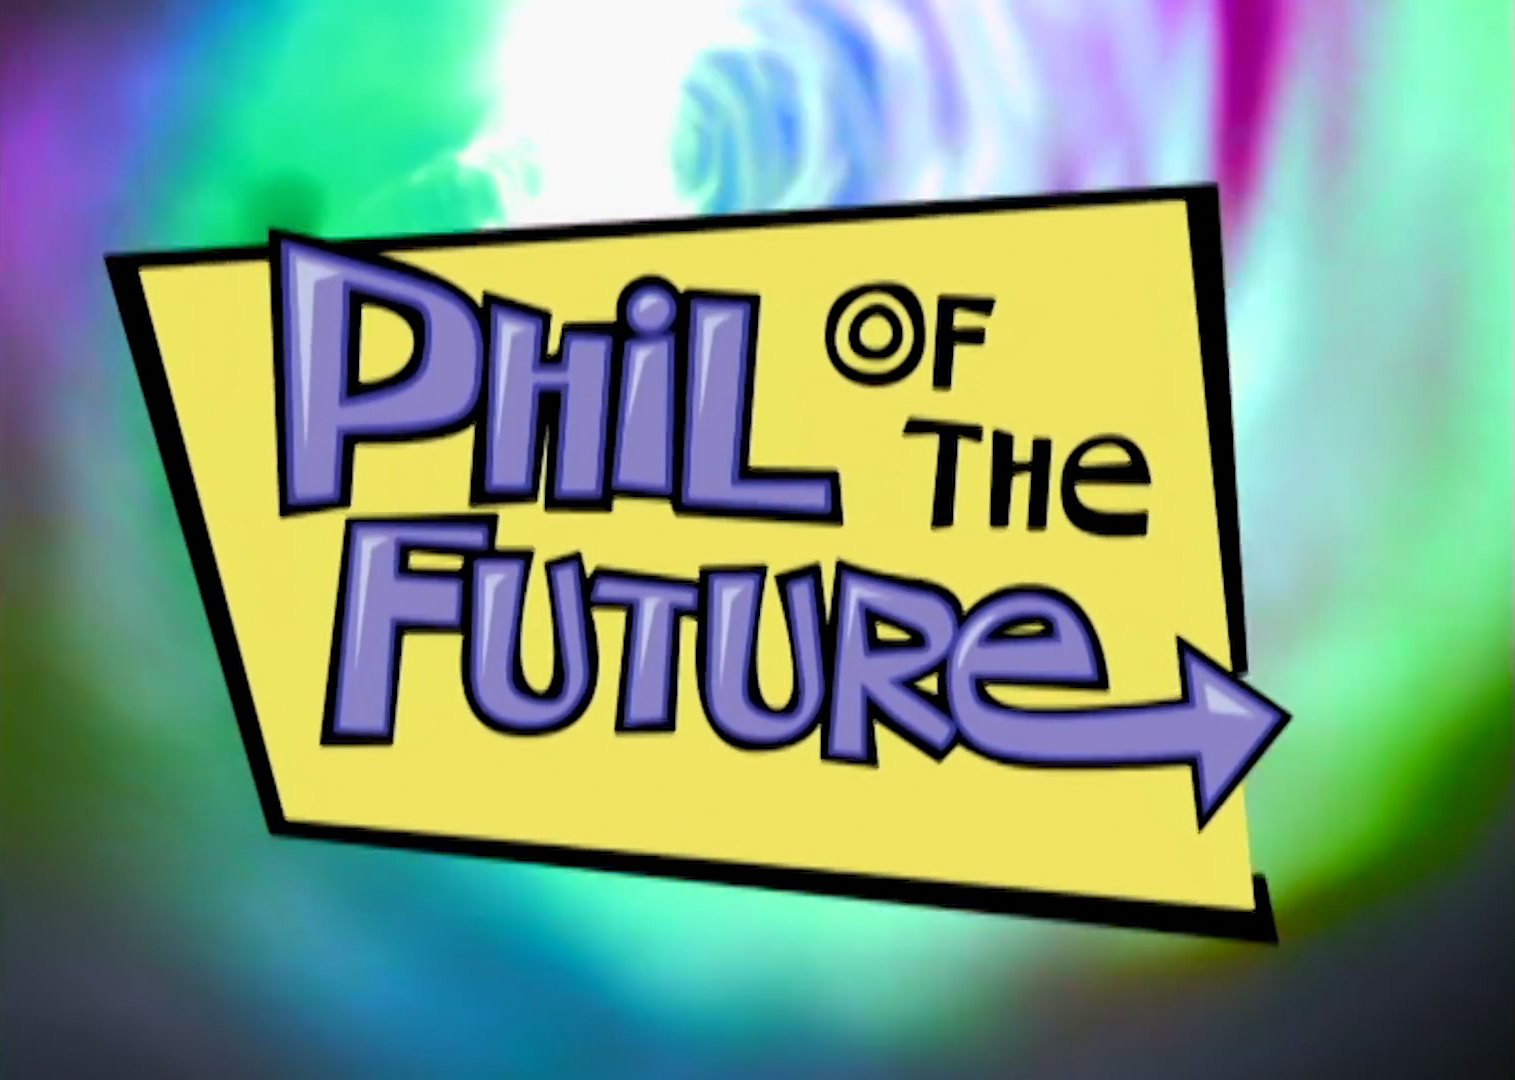 Phil of the Future Theme Song